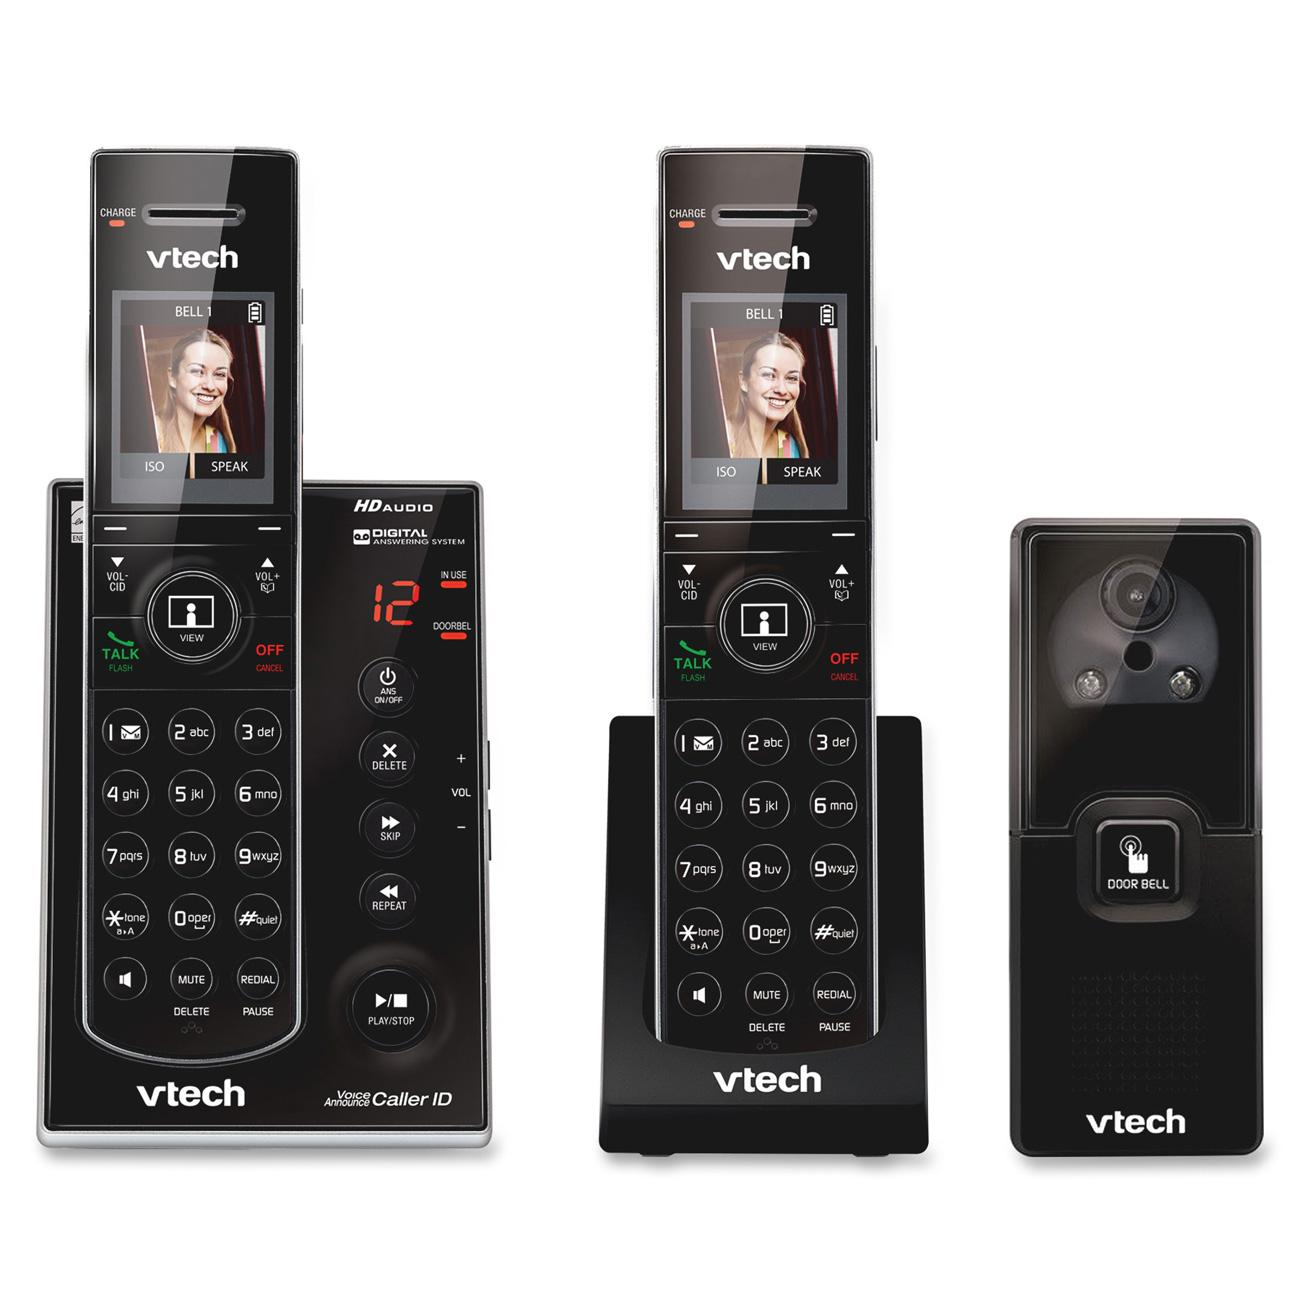 VTech IS7121-2 DECT 6.0 Expandable Cordless Phone with Audio/Video Doorbell and Answering System, Black, 2 Handsets with 1 Video Doorbell